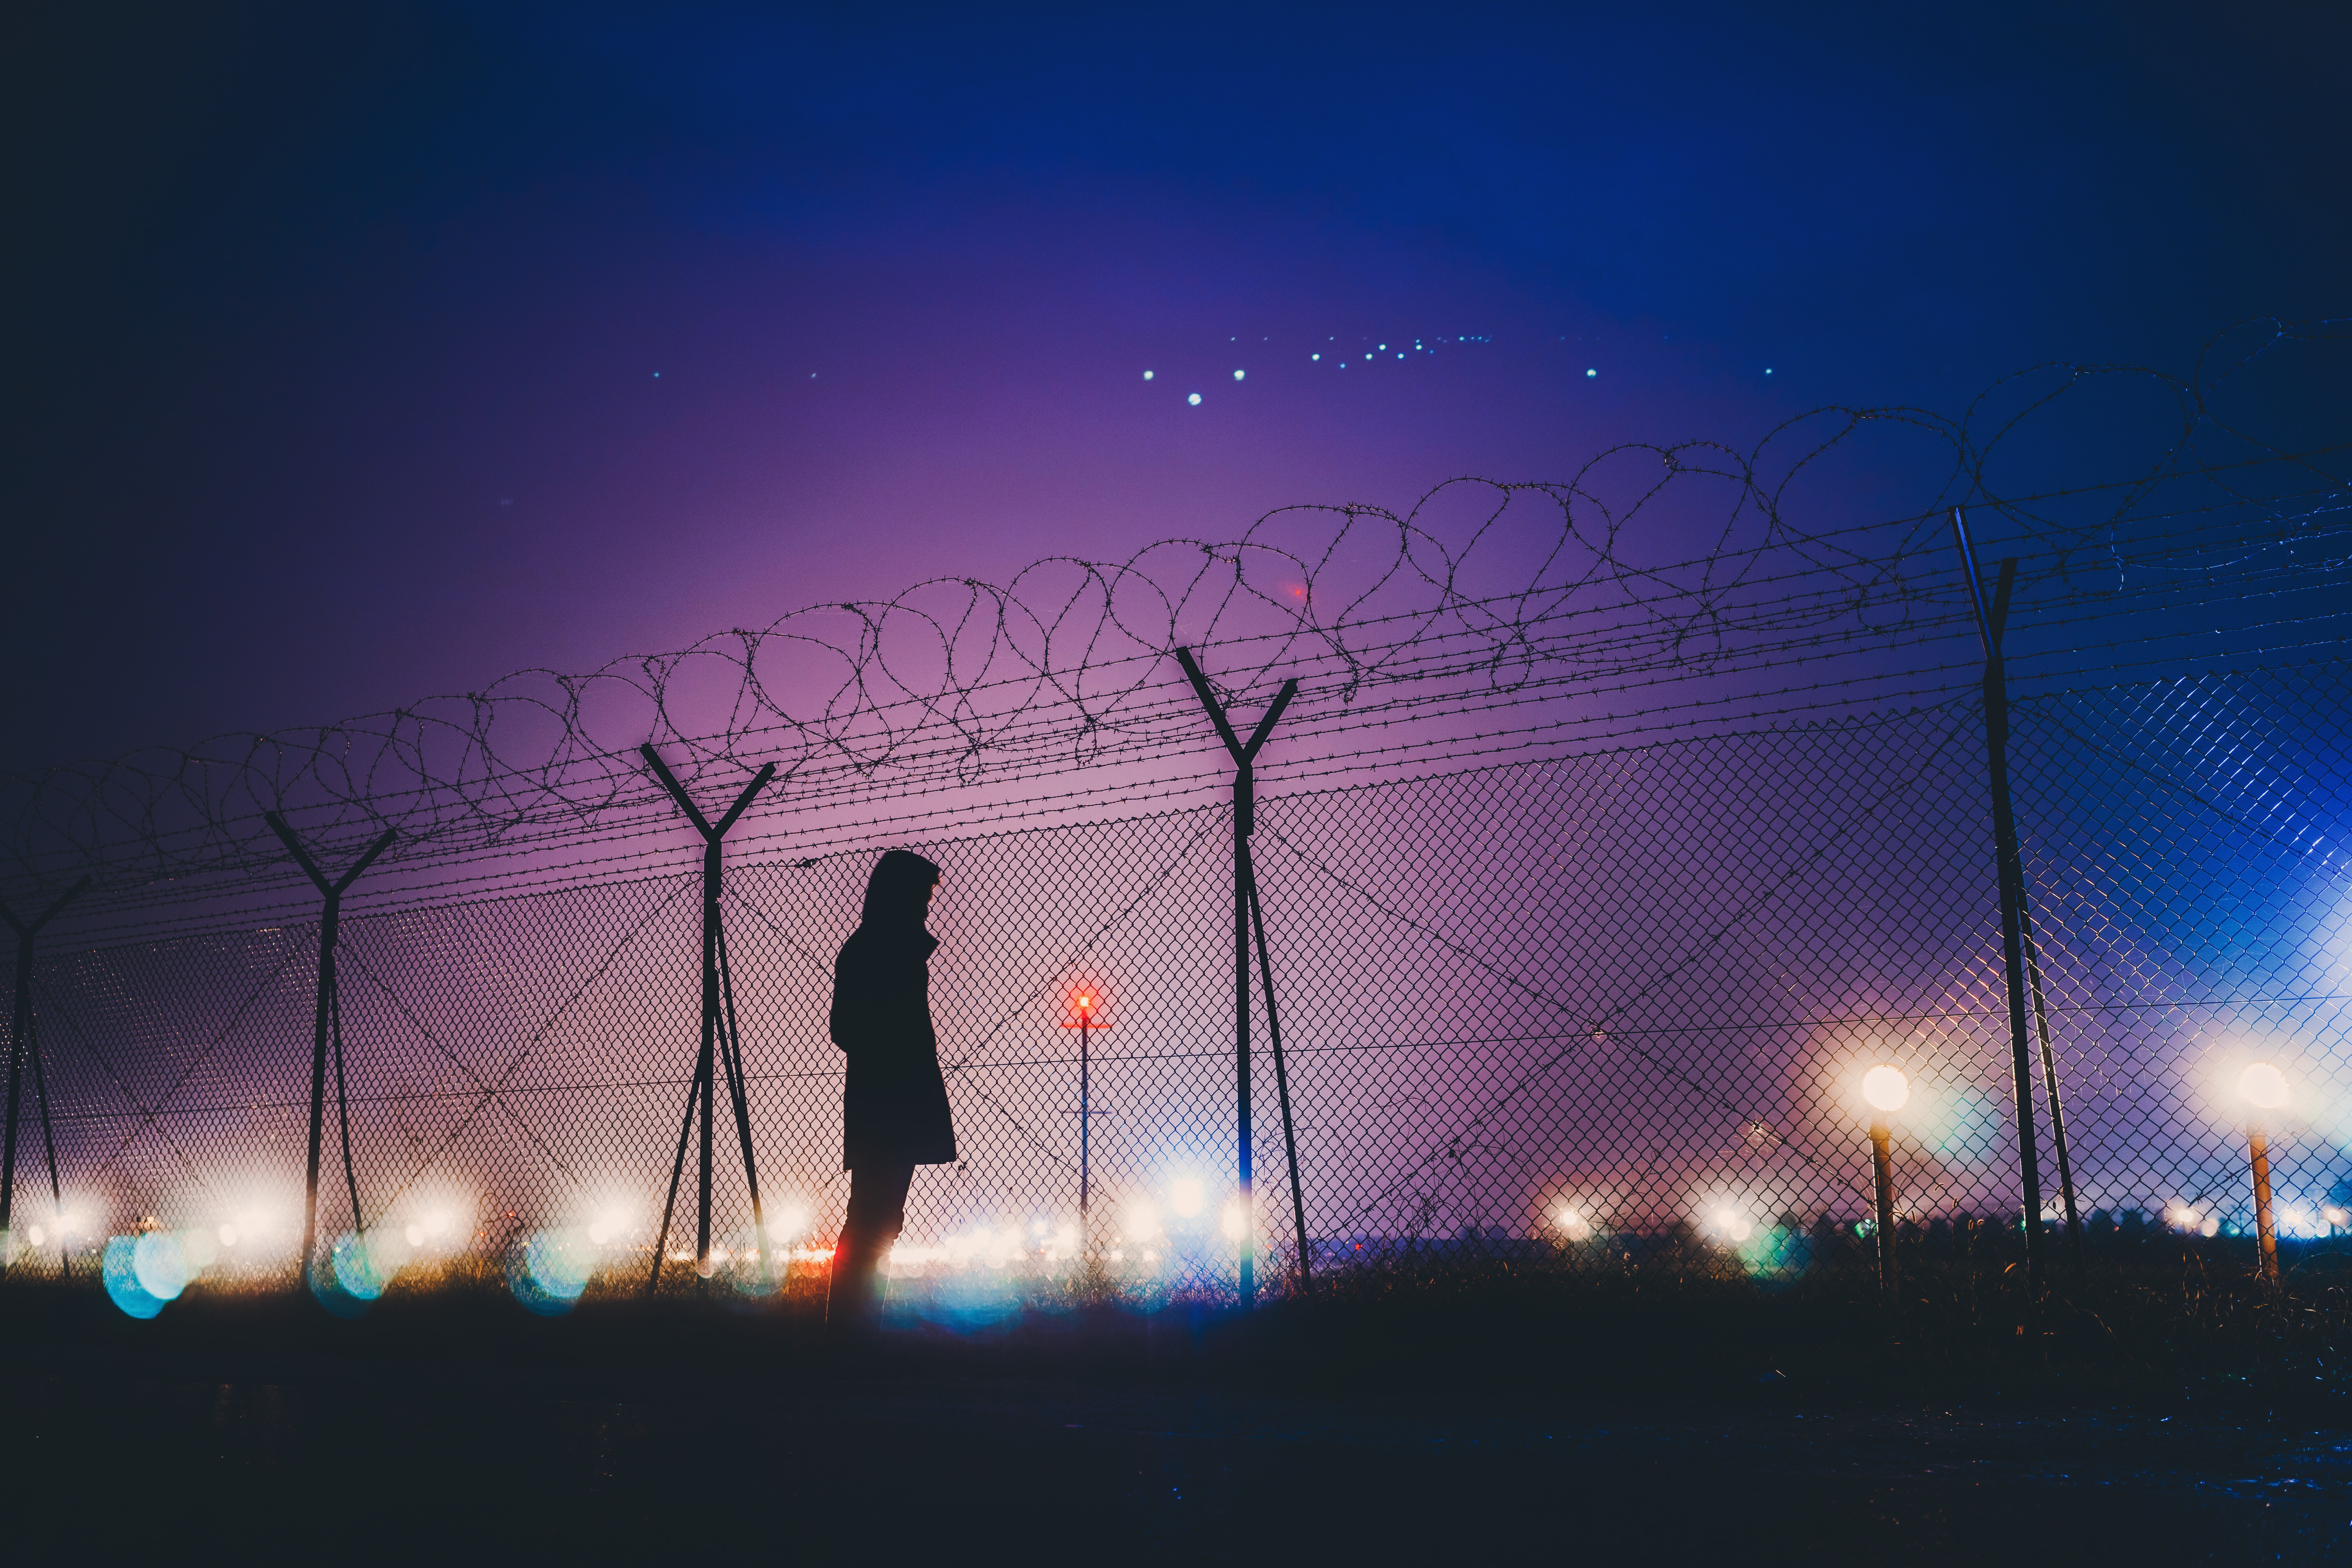 man_silhouette_night_barbed_wire_115312_6000x4000